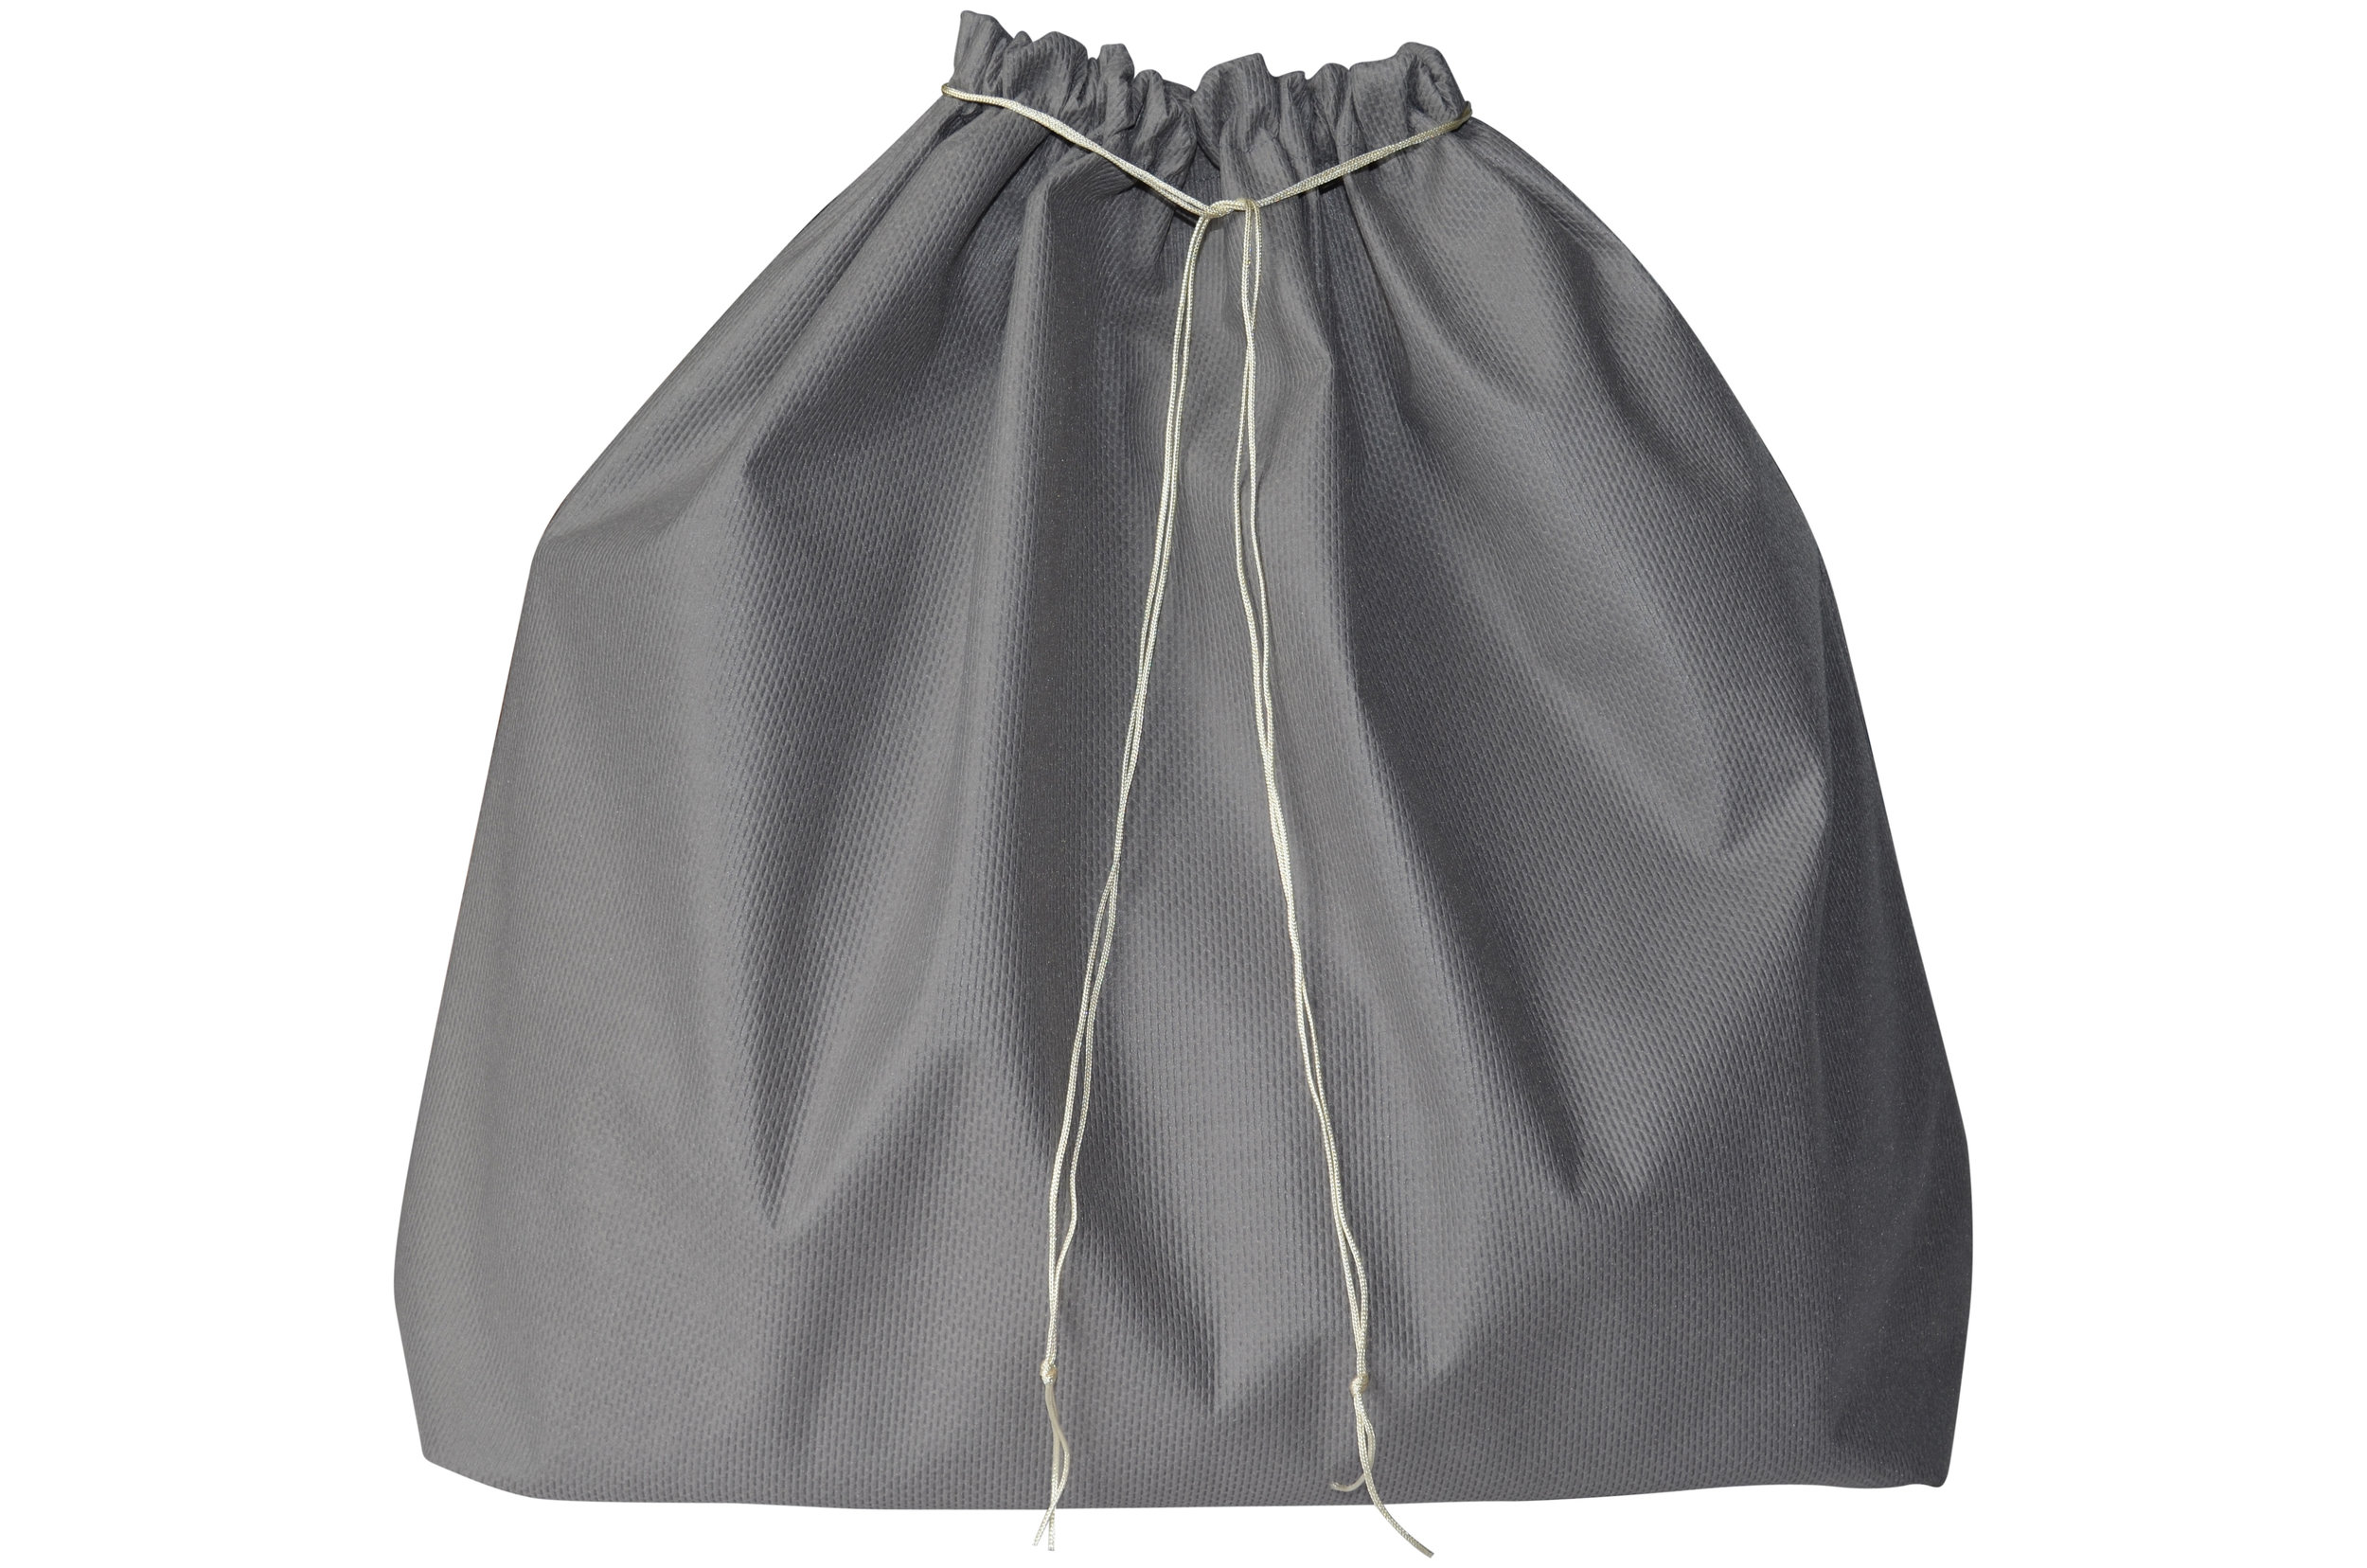 BADB-GY_1 - Dust Bag for leather Handbag, leather belts and leather shoes.JPG